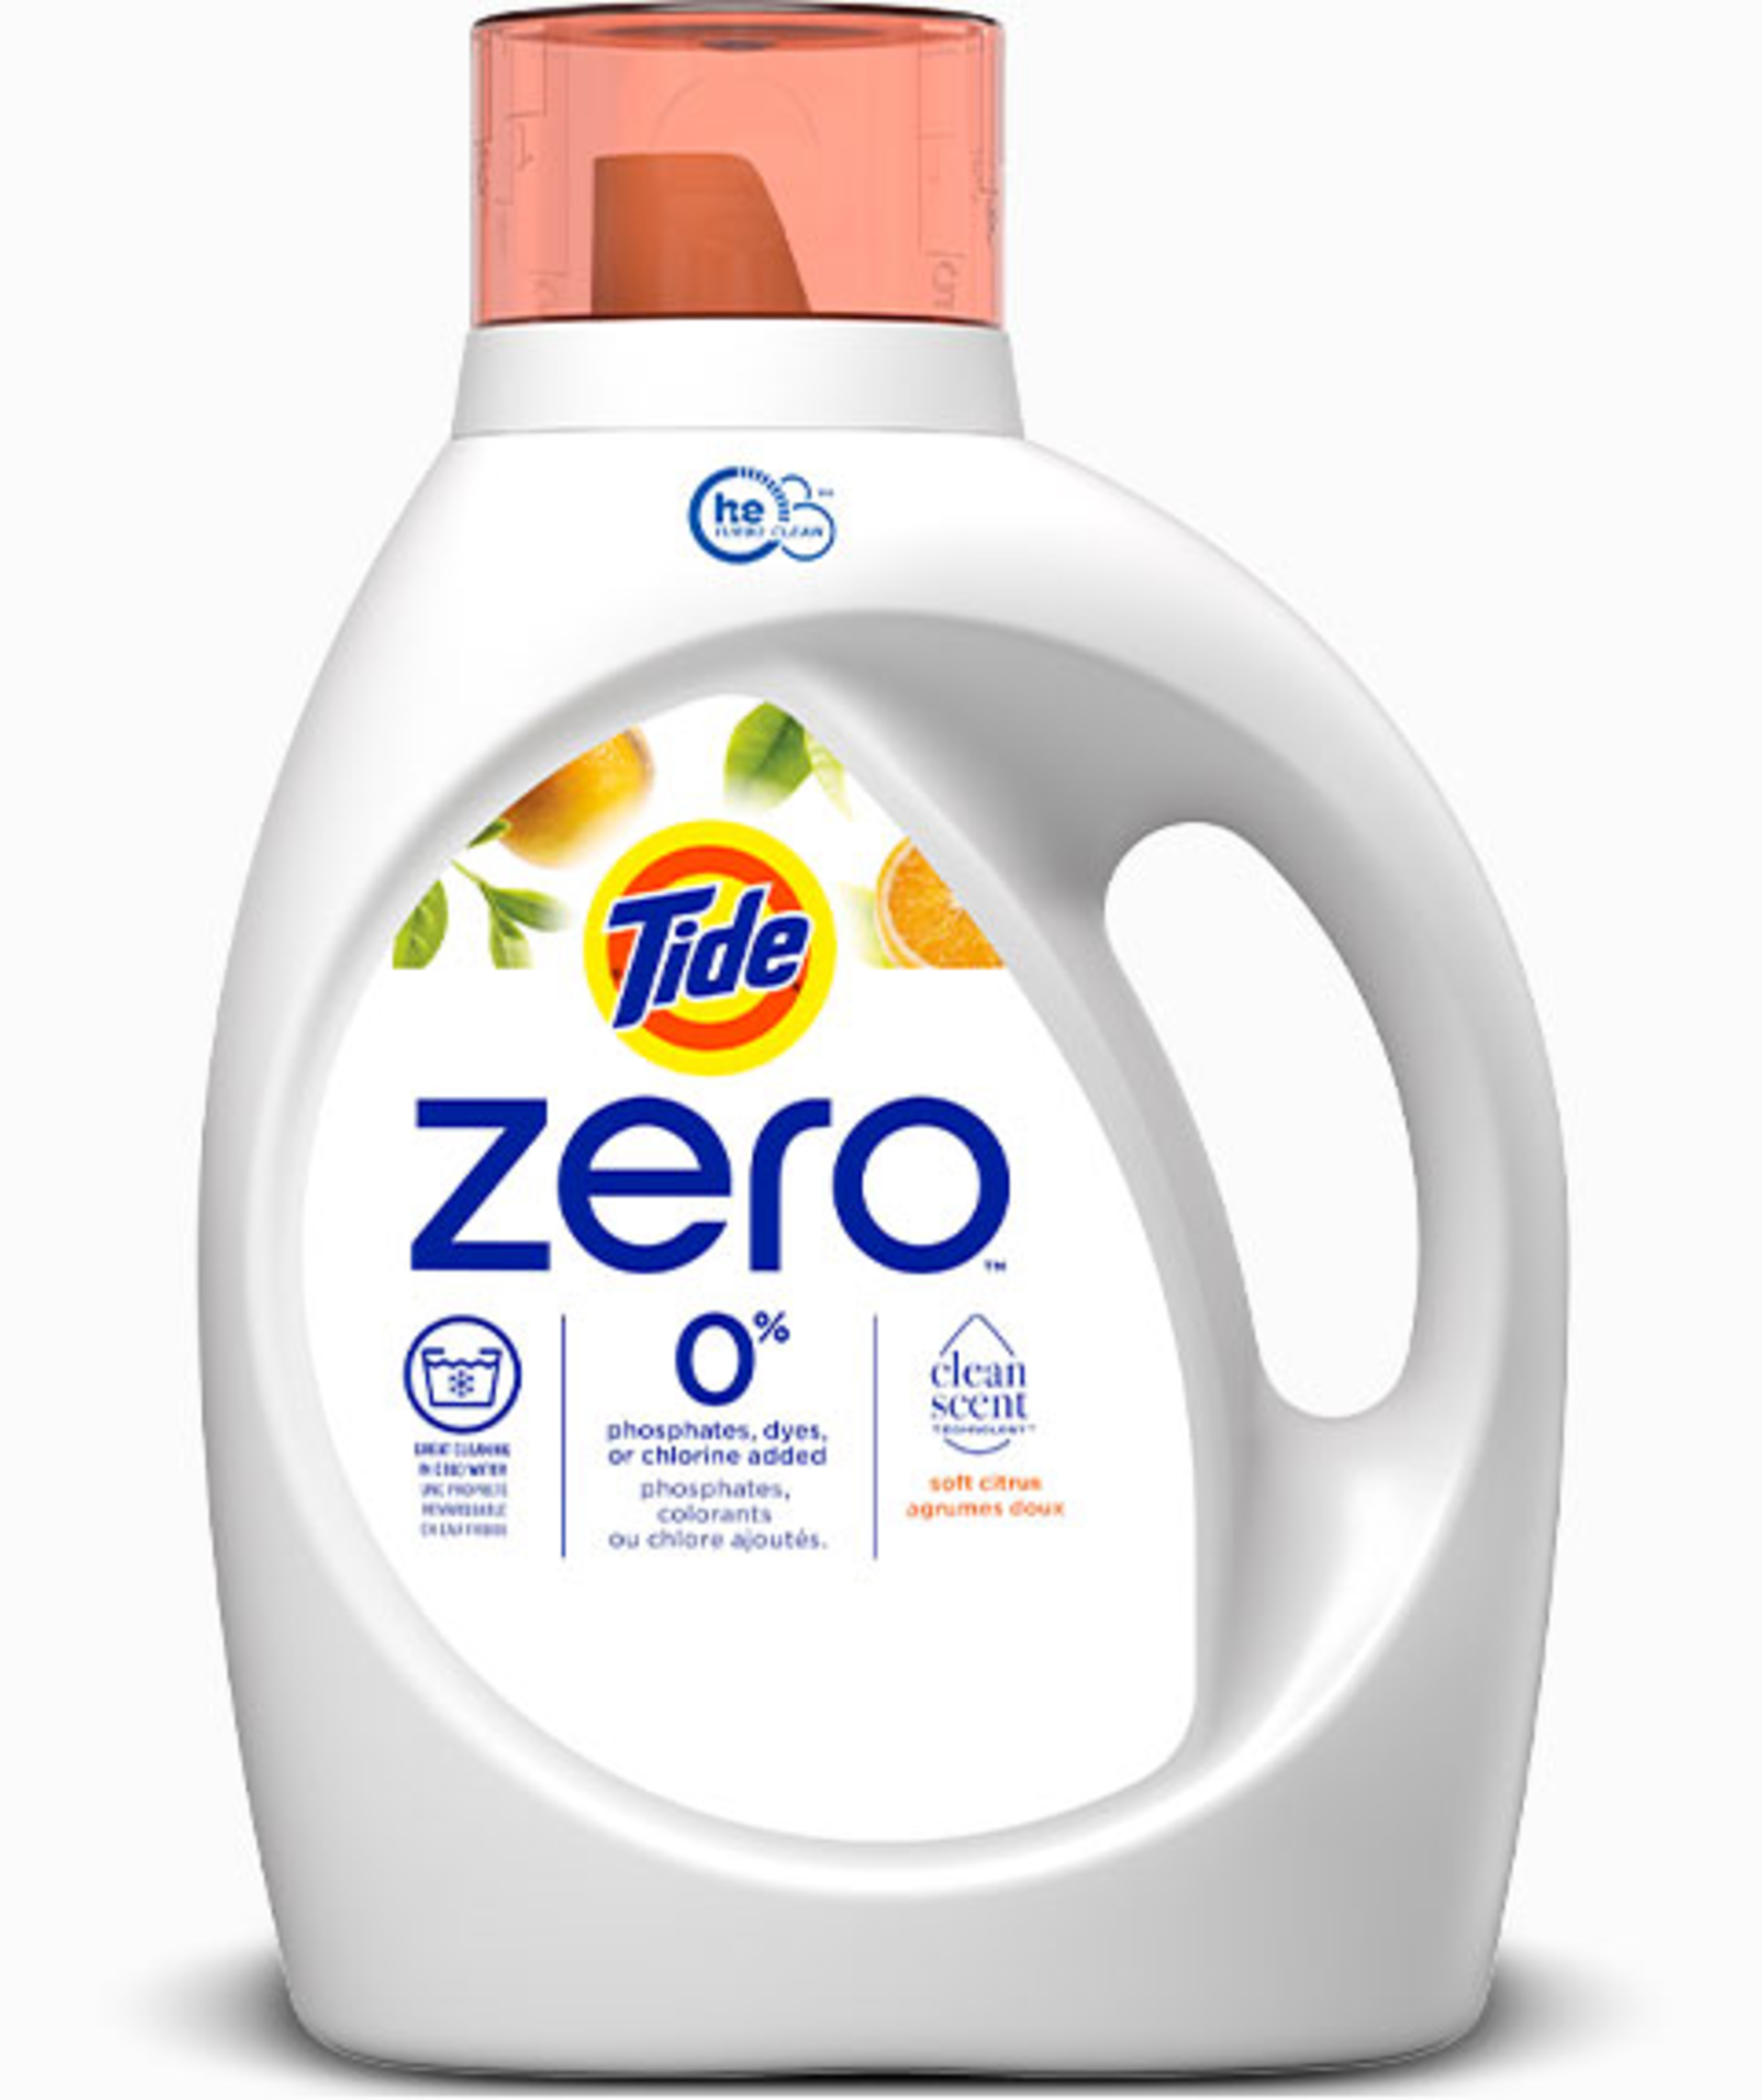 Tide Zero Soft Citrus Liquid Laundry Detergent